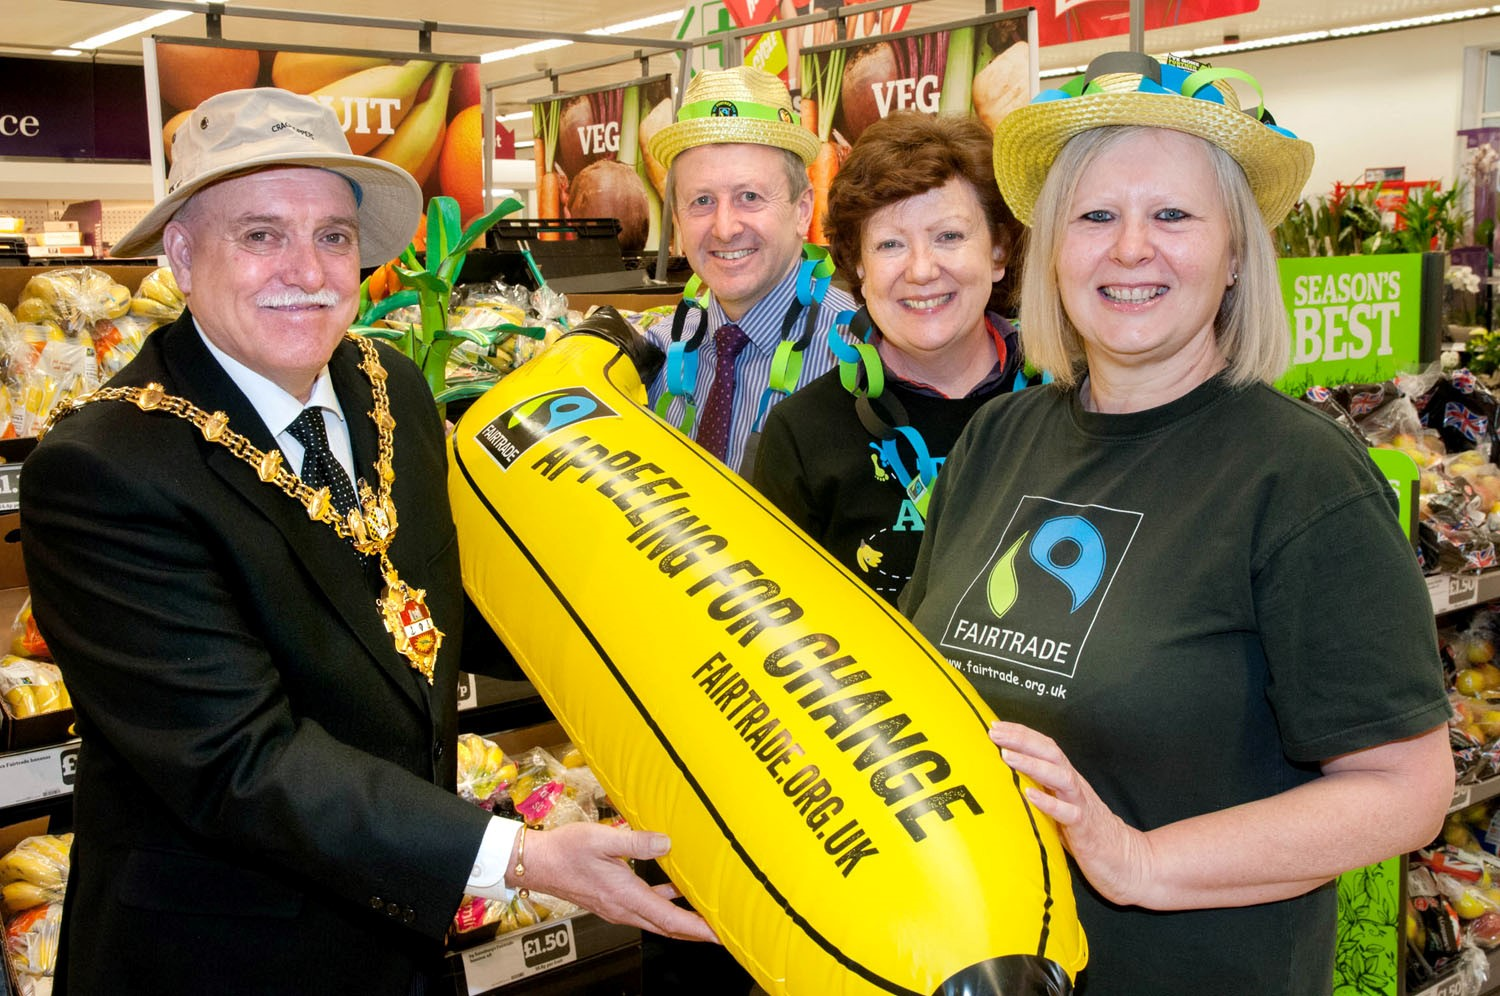 L-r - Mayor of Dudley - Councillor Alan Finch, Sainsburys manager Kevin Healy, Julie Bate and Michaela Vallance of Stourbridge Fairtrade. Buy photo: 091403MH